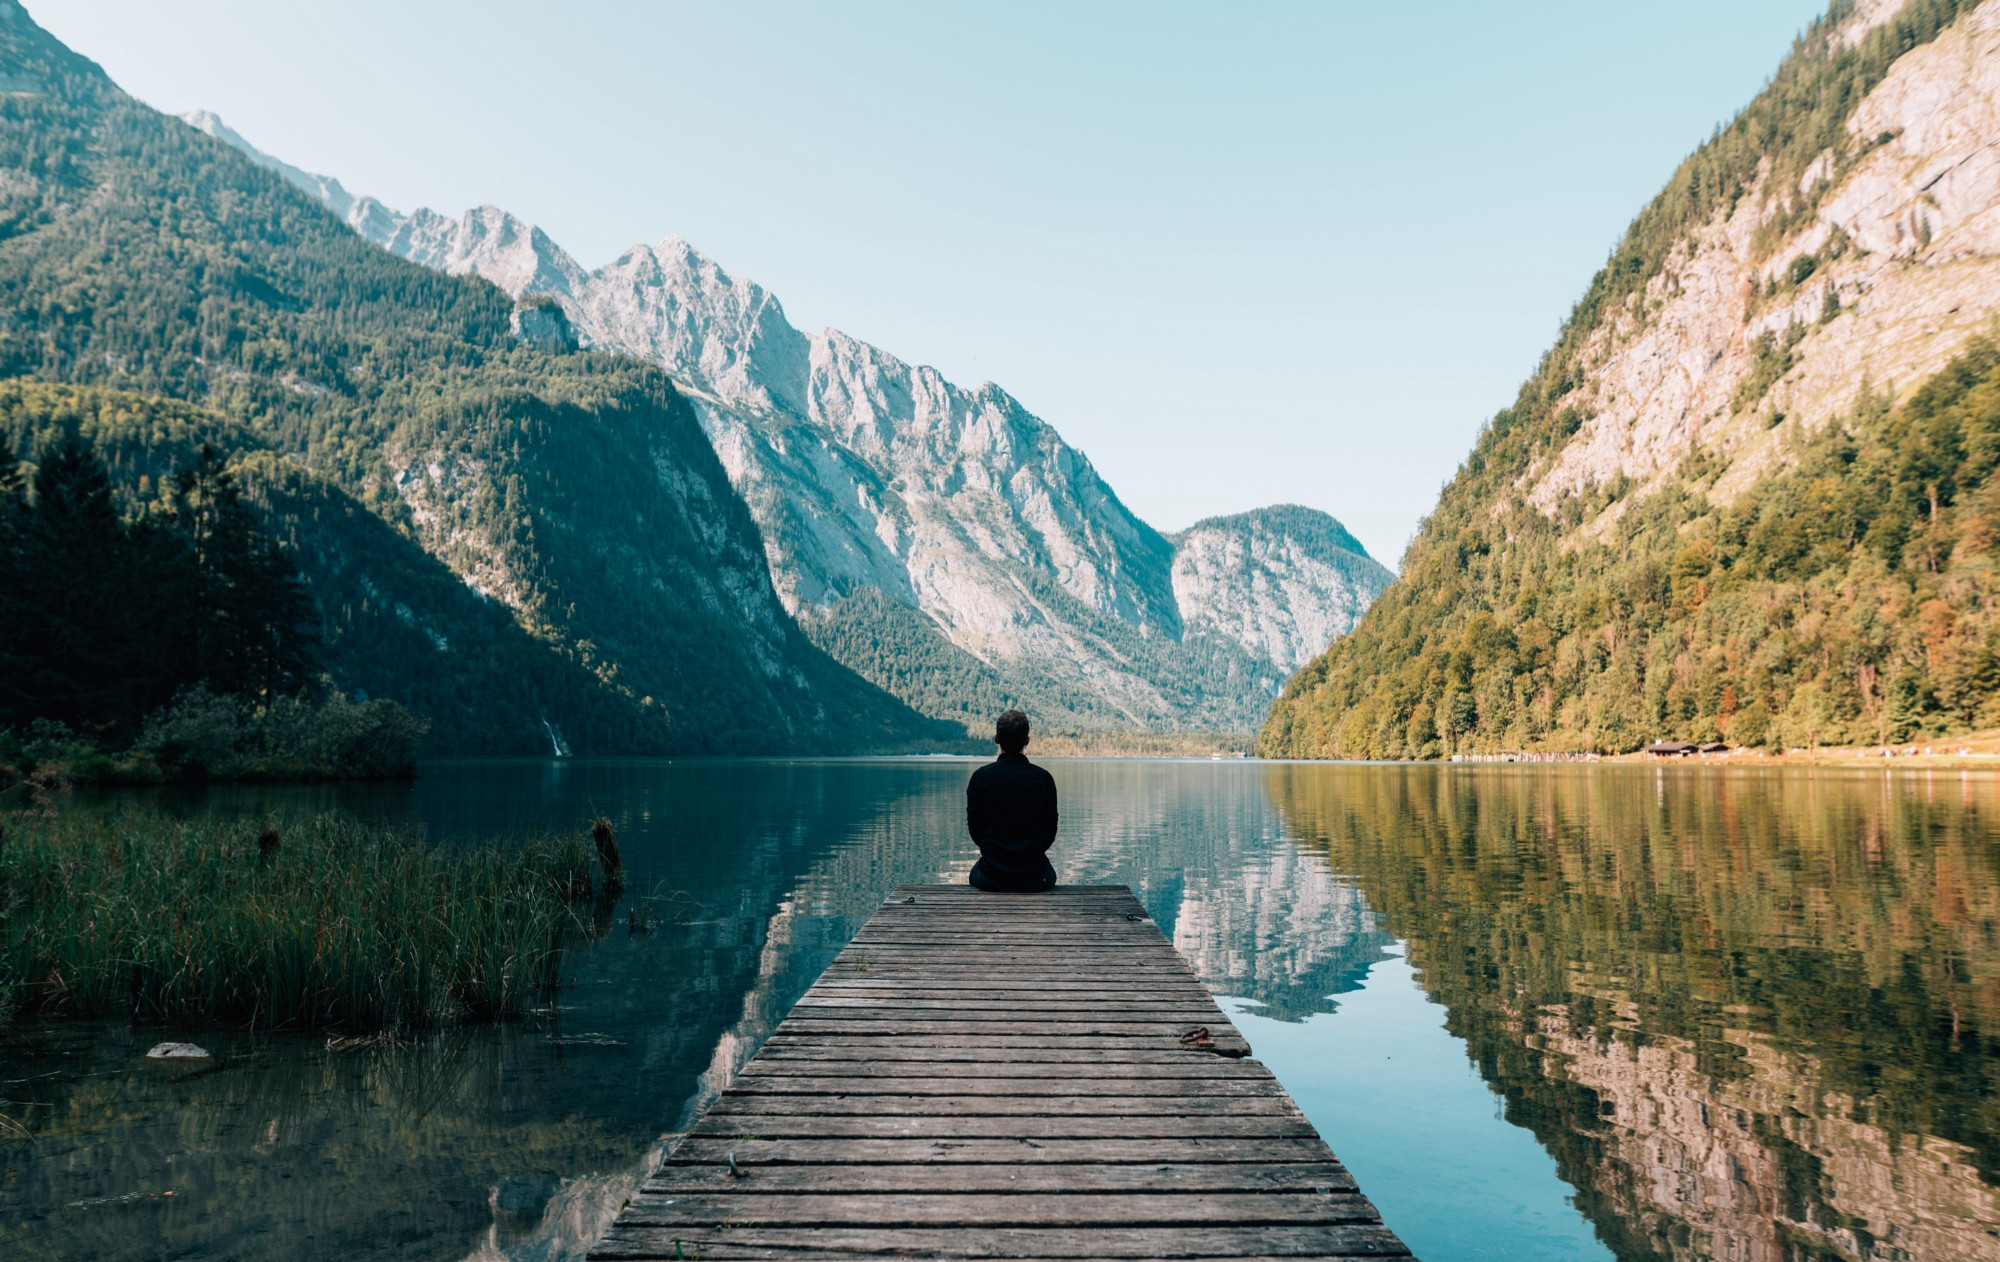 How To Cultivate Mindfulness In Your Everyday Life